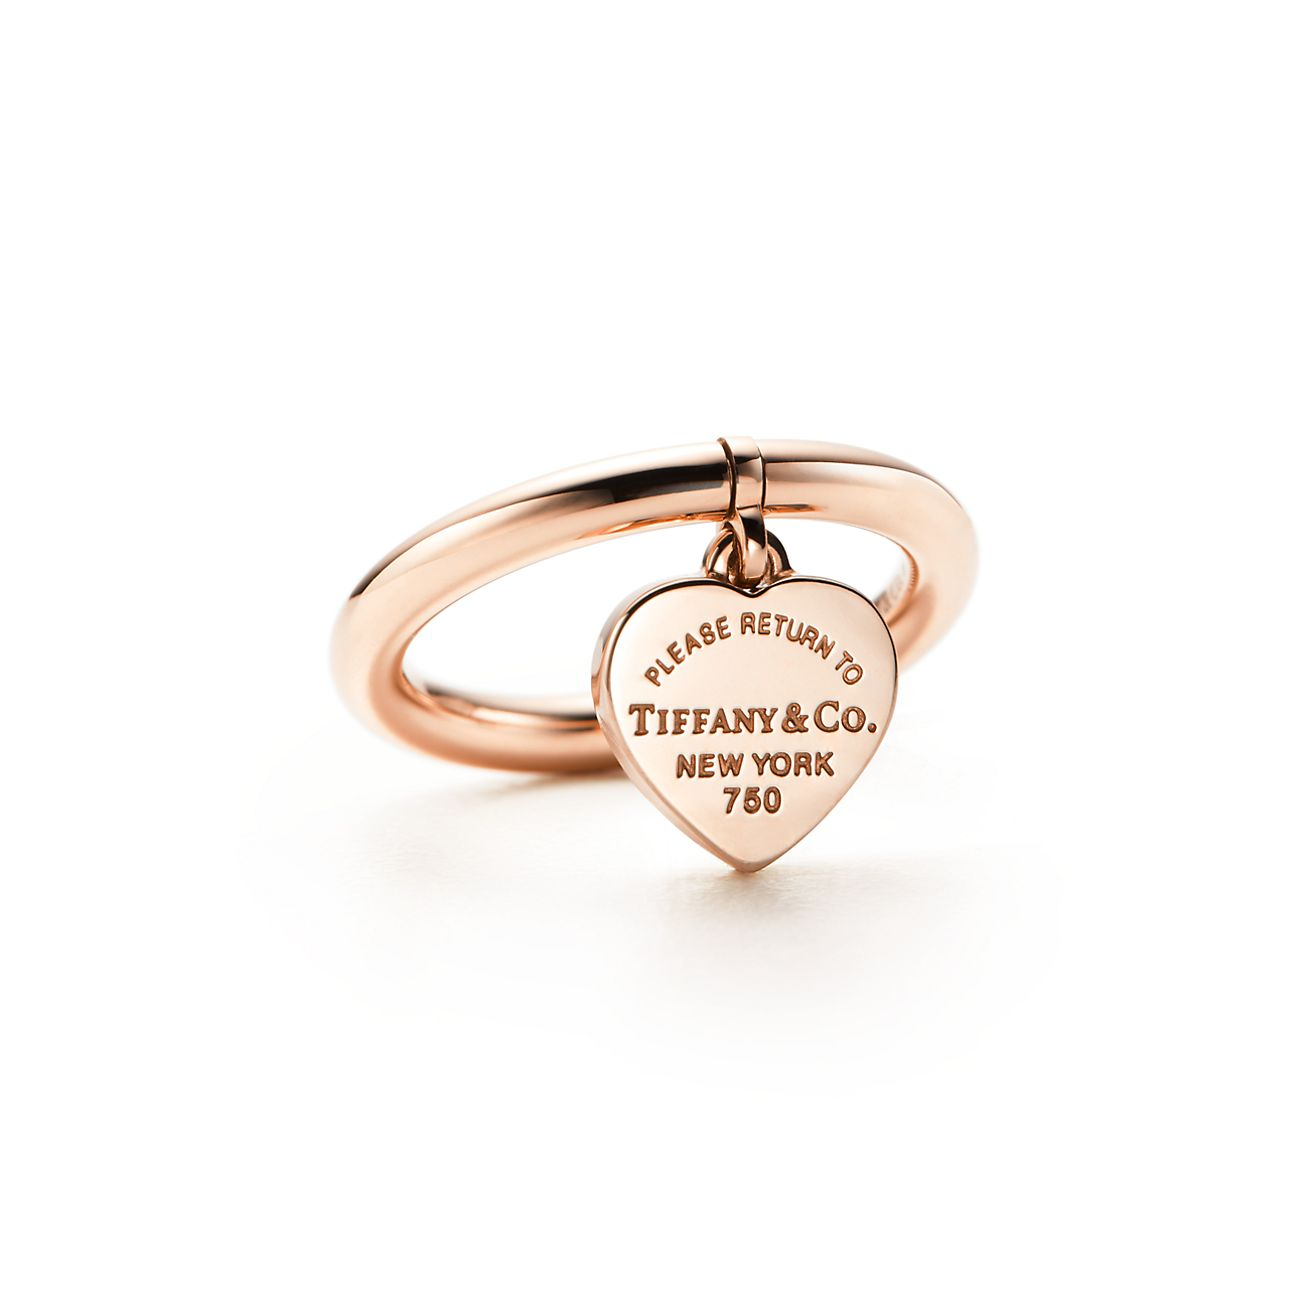 Return To Tiffany Heart Tag Ring In 18k Rose Gold Tiffany Co